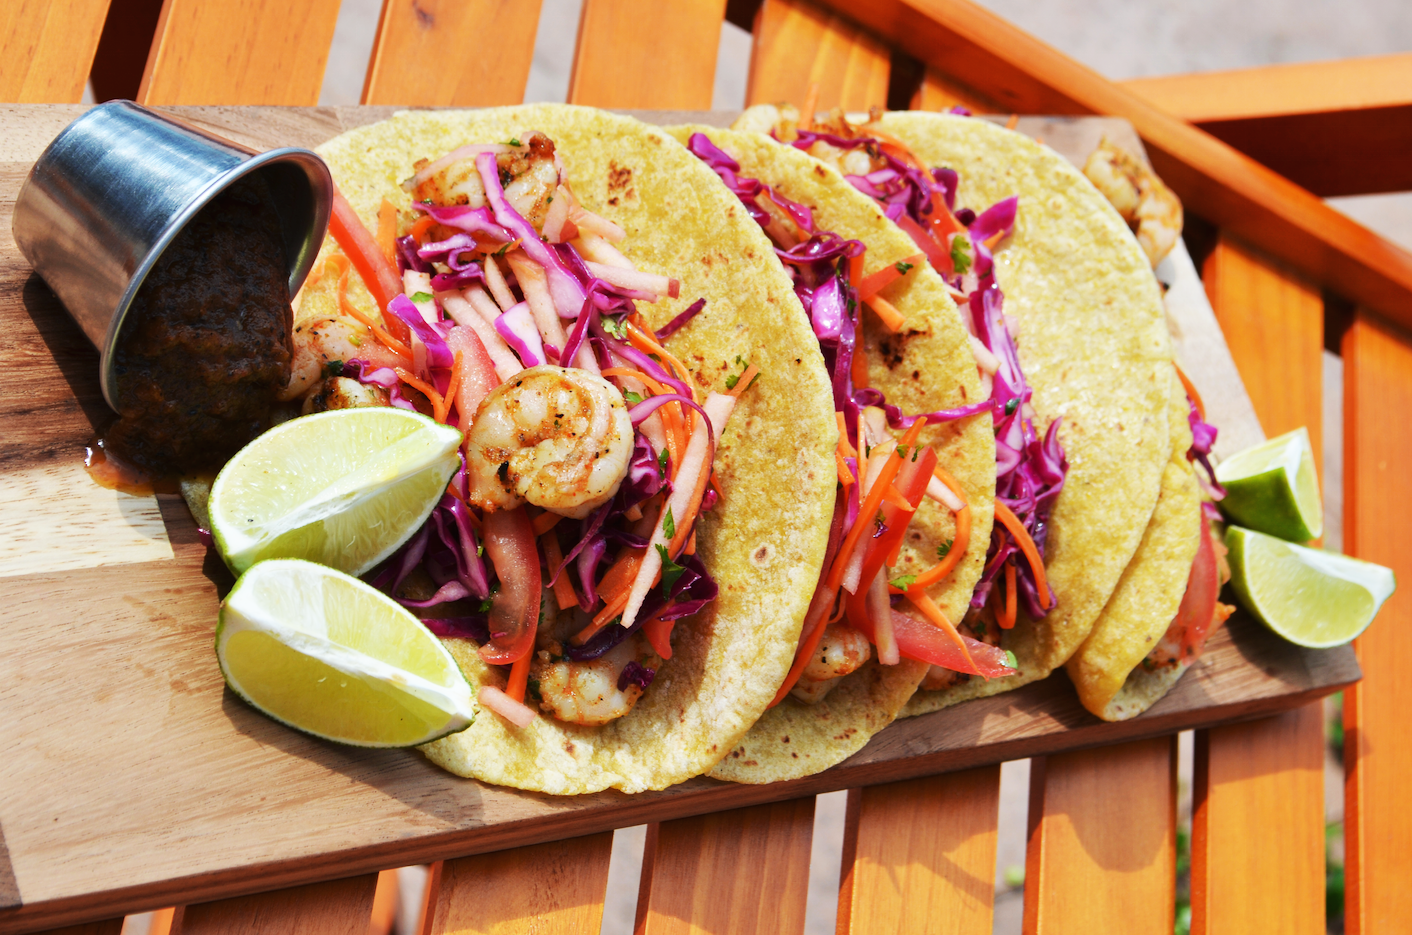 Medicated Shrimp Tacos with Coleslaw by FOX & NUG